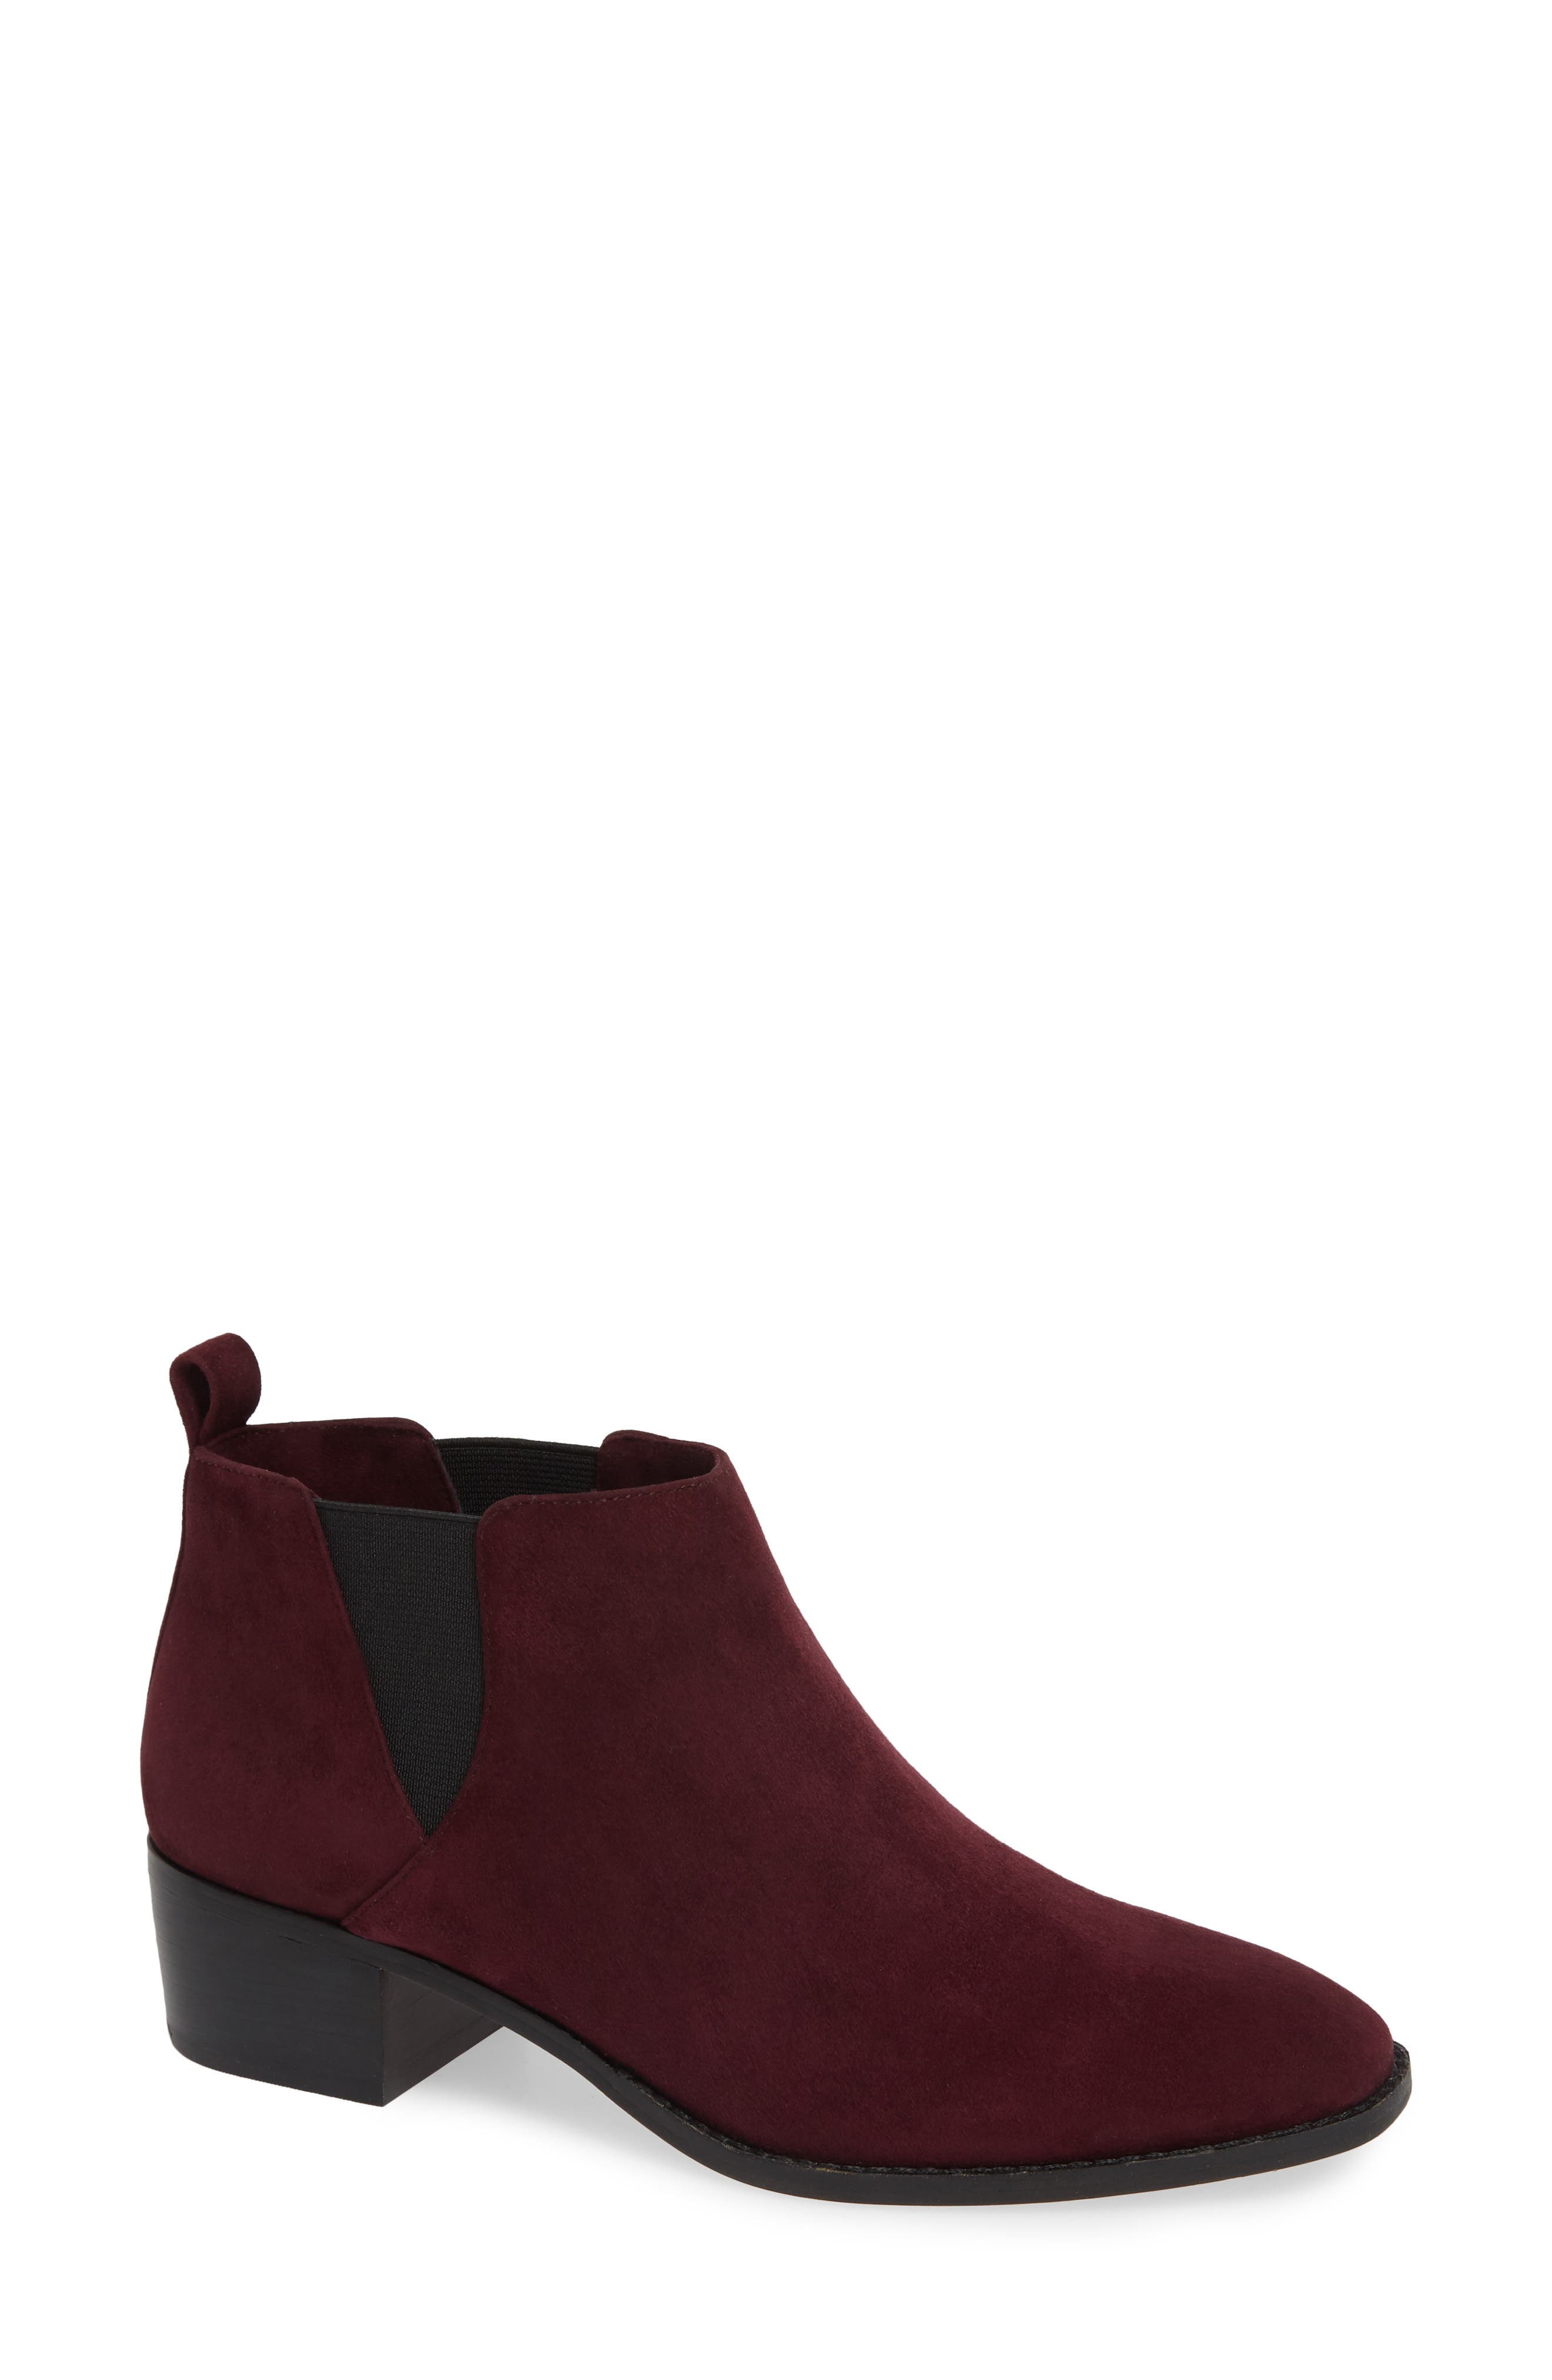 Jahlily Chelsea Bootie,                             Main thumbnail 1, color,                             DARK PLUM SUEDE